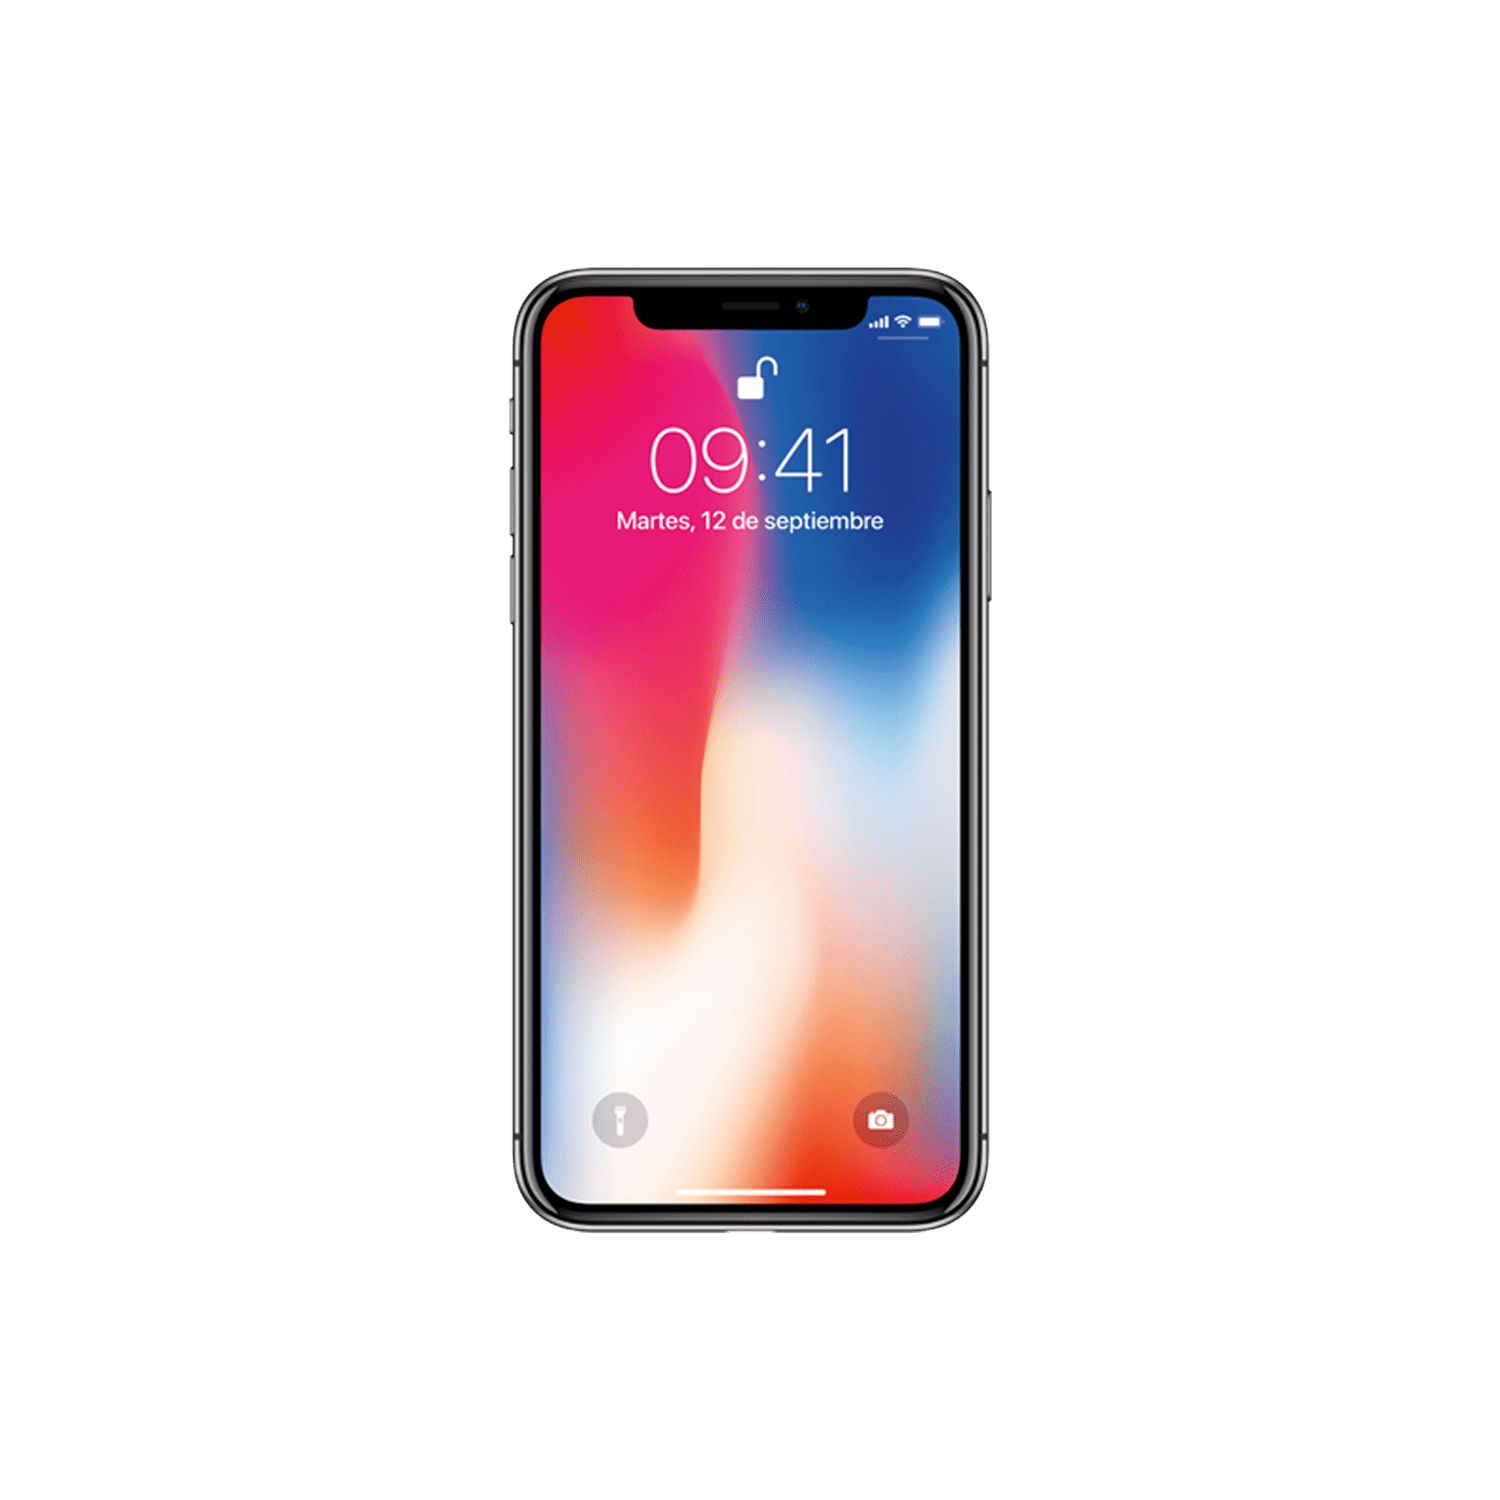 64GB iPhone 11 Pro for 1,069 euros, 44mm Apple Watch Series 5 GPS for 448 euros and iPad (2019) for 338 euros: Bargain Hunting